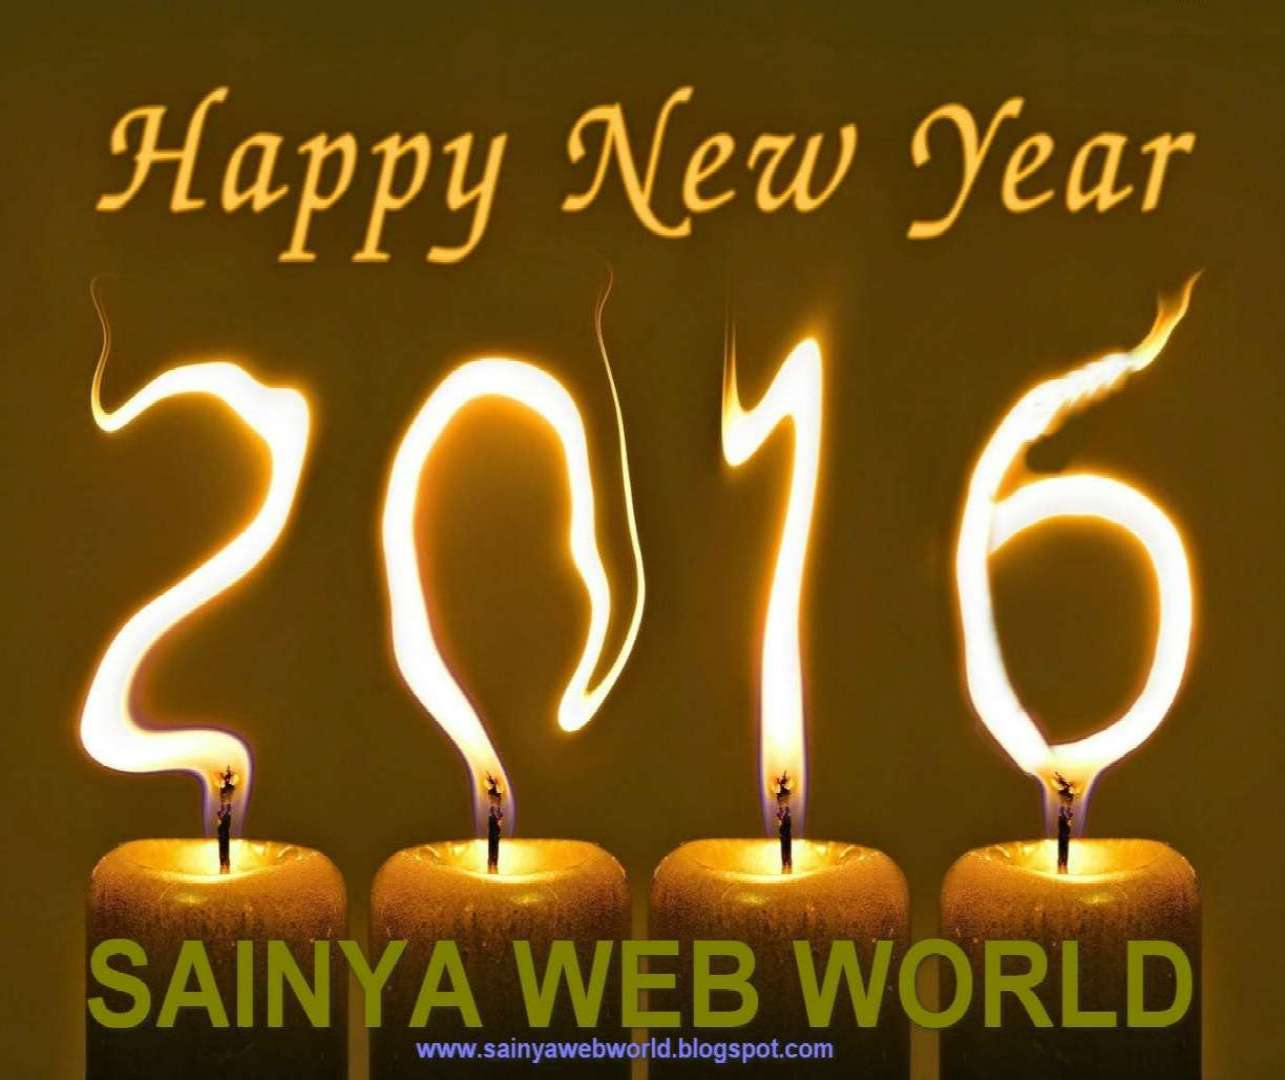 SAINYA WEB WORLD